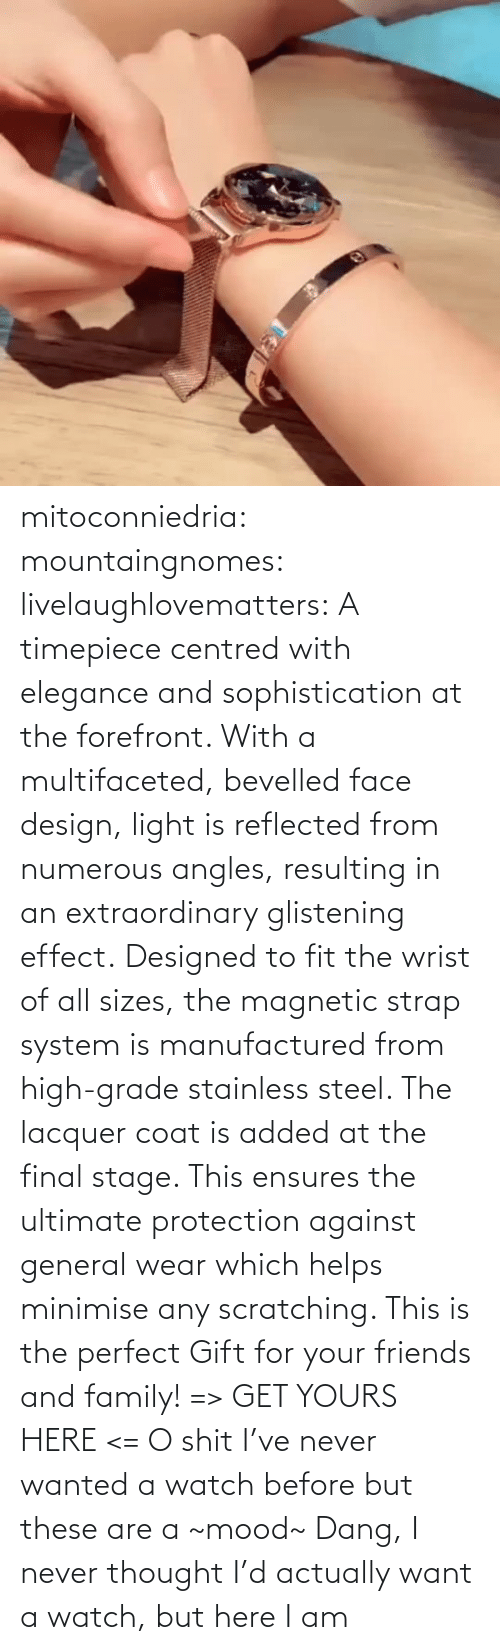 media: mitoconniedria: mountaingnomes:   livelaughlovematters:  A timepiece centred with elegance and sophistication at the forefront. With a multifaceted, bevelled face design, light is reflected from numerous angles, resulting in an extraordinary glistening effect. Designed to fit the wrist of all sizes, the magnetic strap system is manufactured from high-grade stainless steel. The lacquer coat is added at the final stage. This ensures the ultimate protection against general wear which helps minimise any scratching. This is the perfect Gift for your friends and family! => GET YOURS HERE <=  O shit I've never wanted a watch before but these are a ~mood~    Dang, I never thought I'd actually want a watch, but here I am